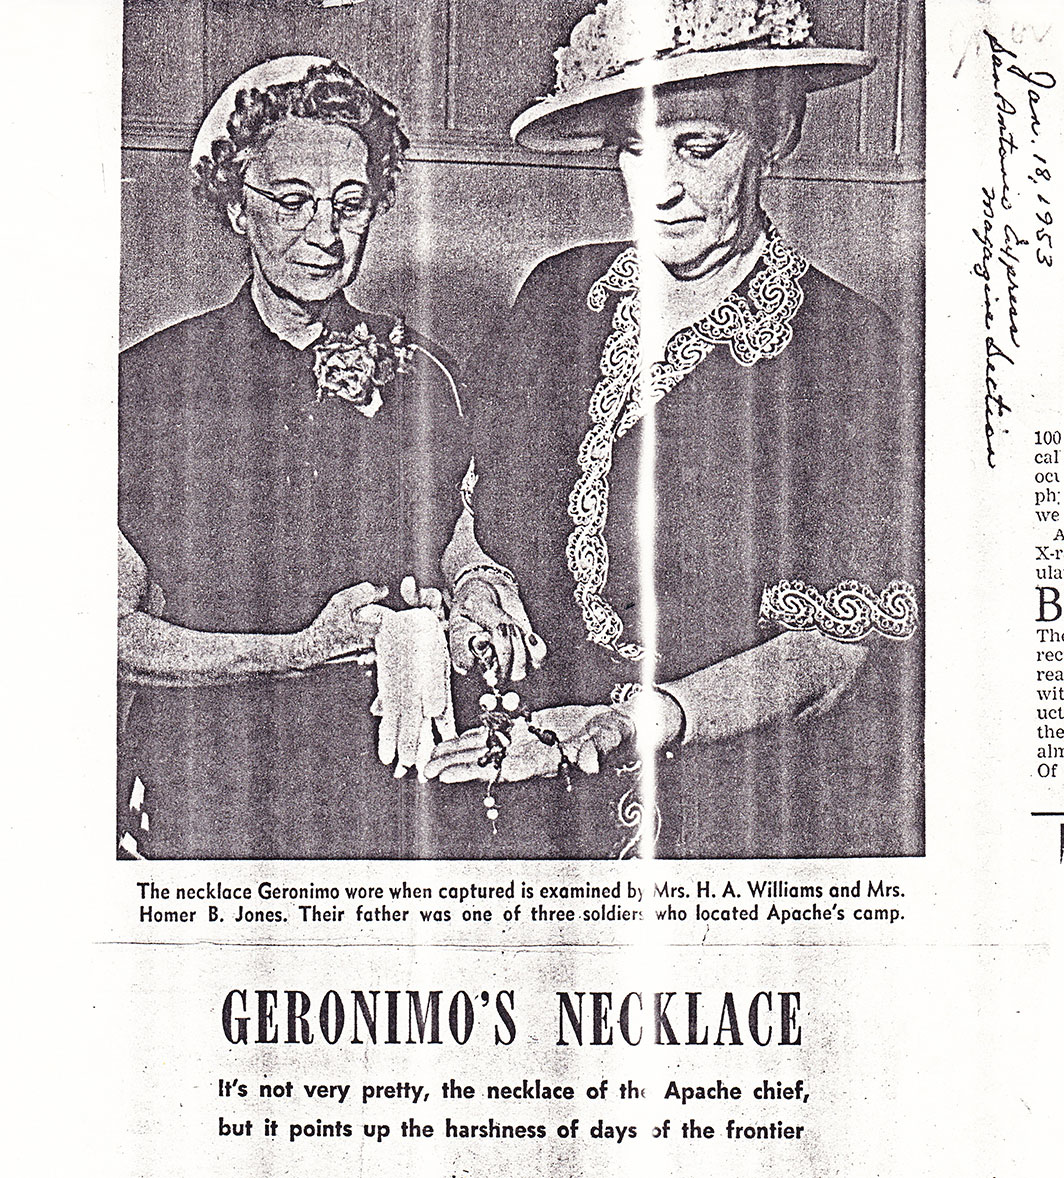 Copy of 1958 newspaper article featuring the story of Geronimo's necklace.